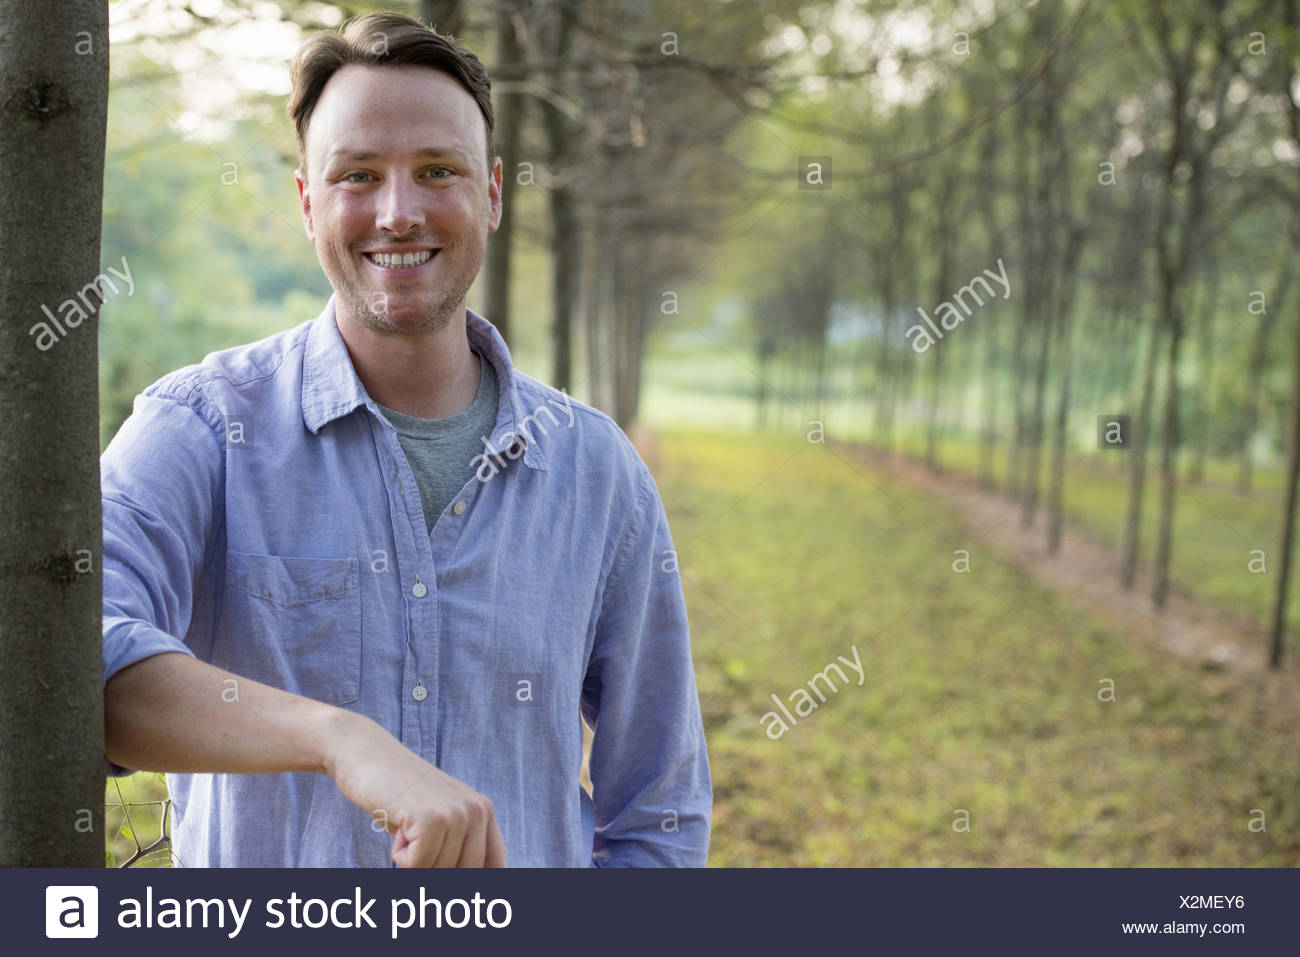 A man leaning against a tree looking at camera. - Stock Image